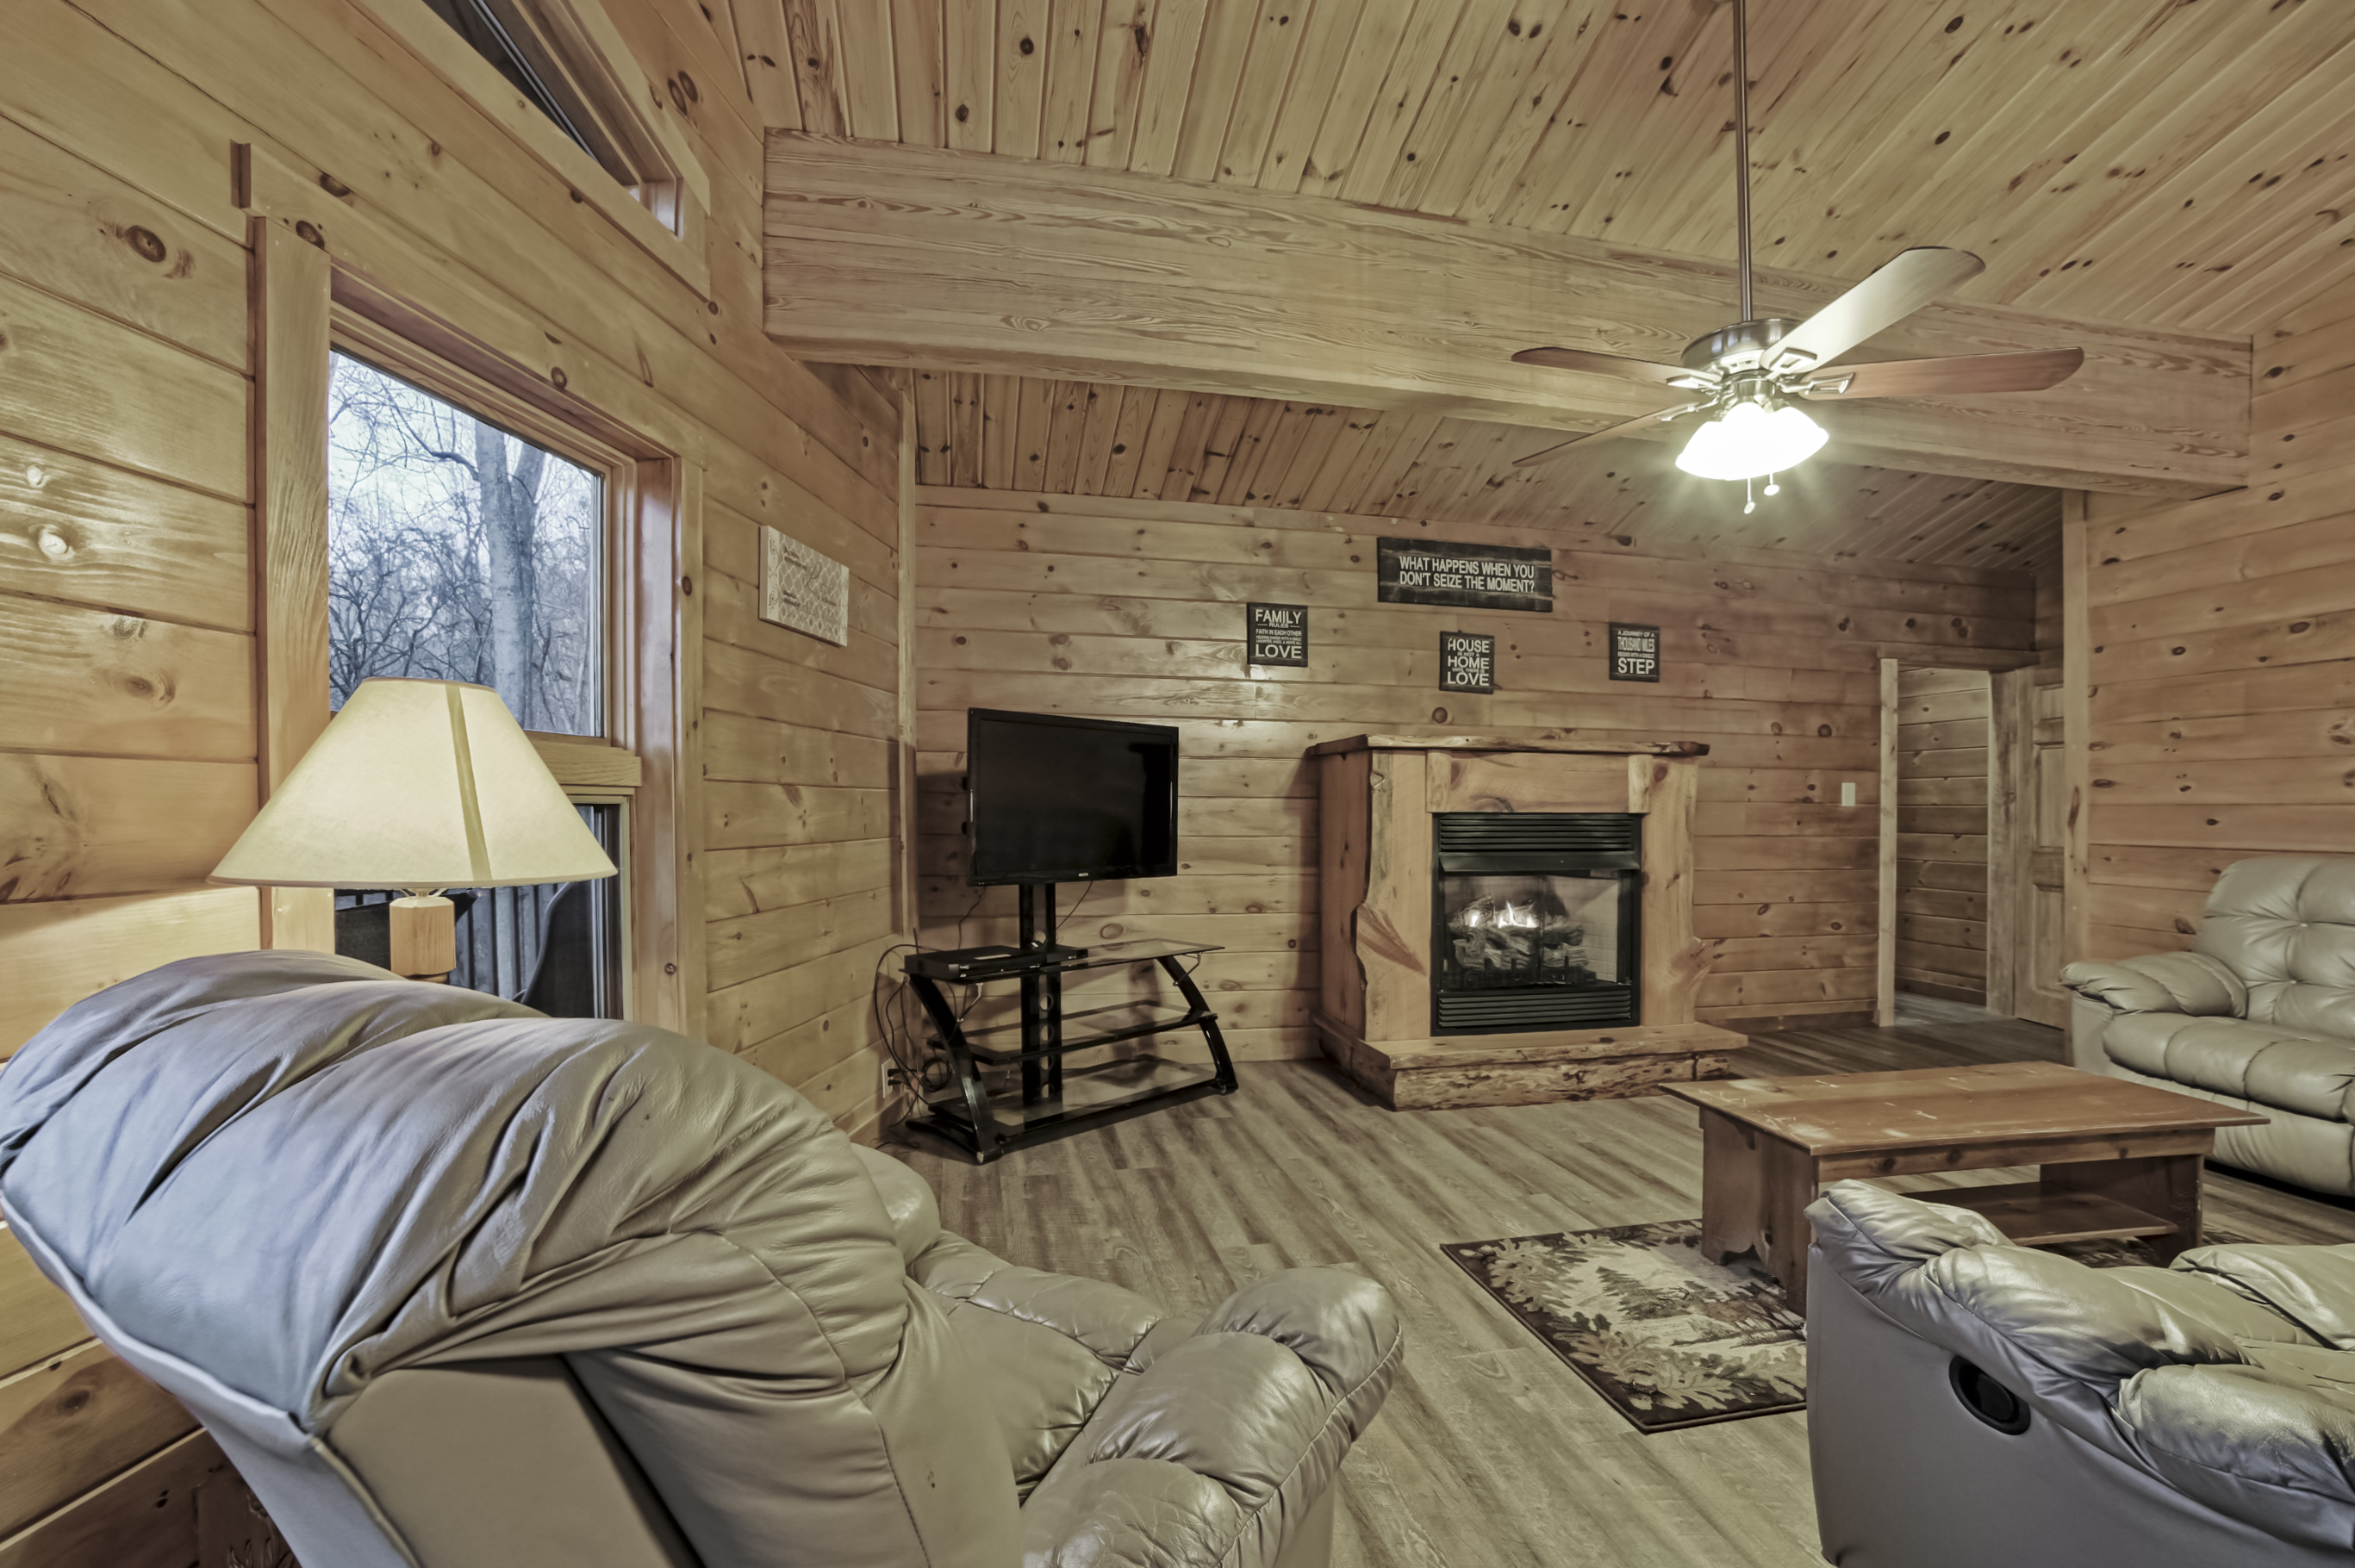 forrest georgia resort tree lodge hotel ga cabins suites topper dahlonega hills rentals north rooms at in